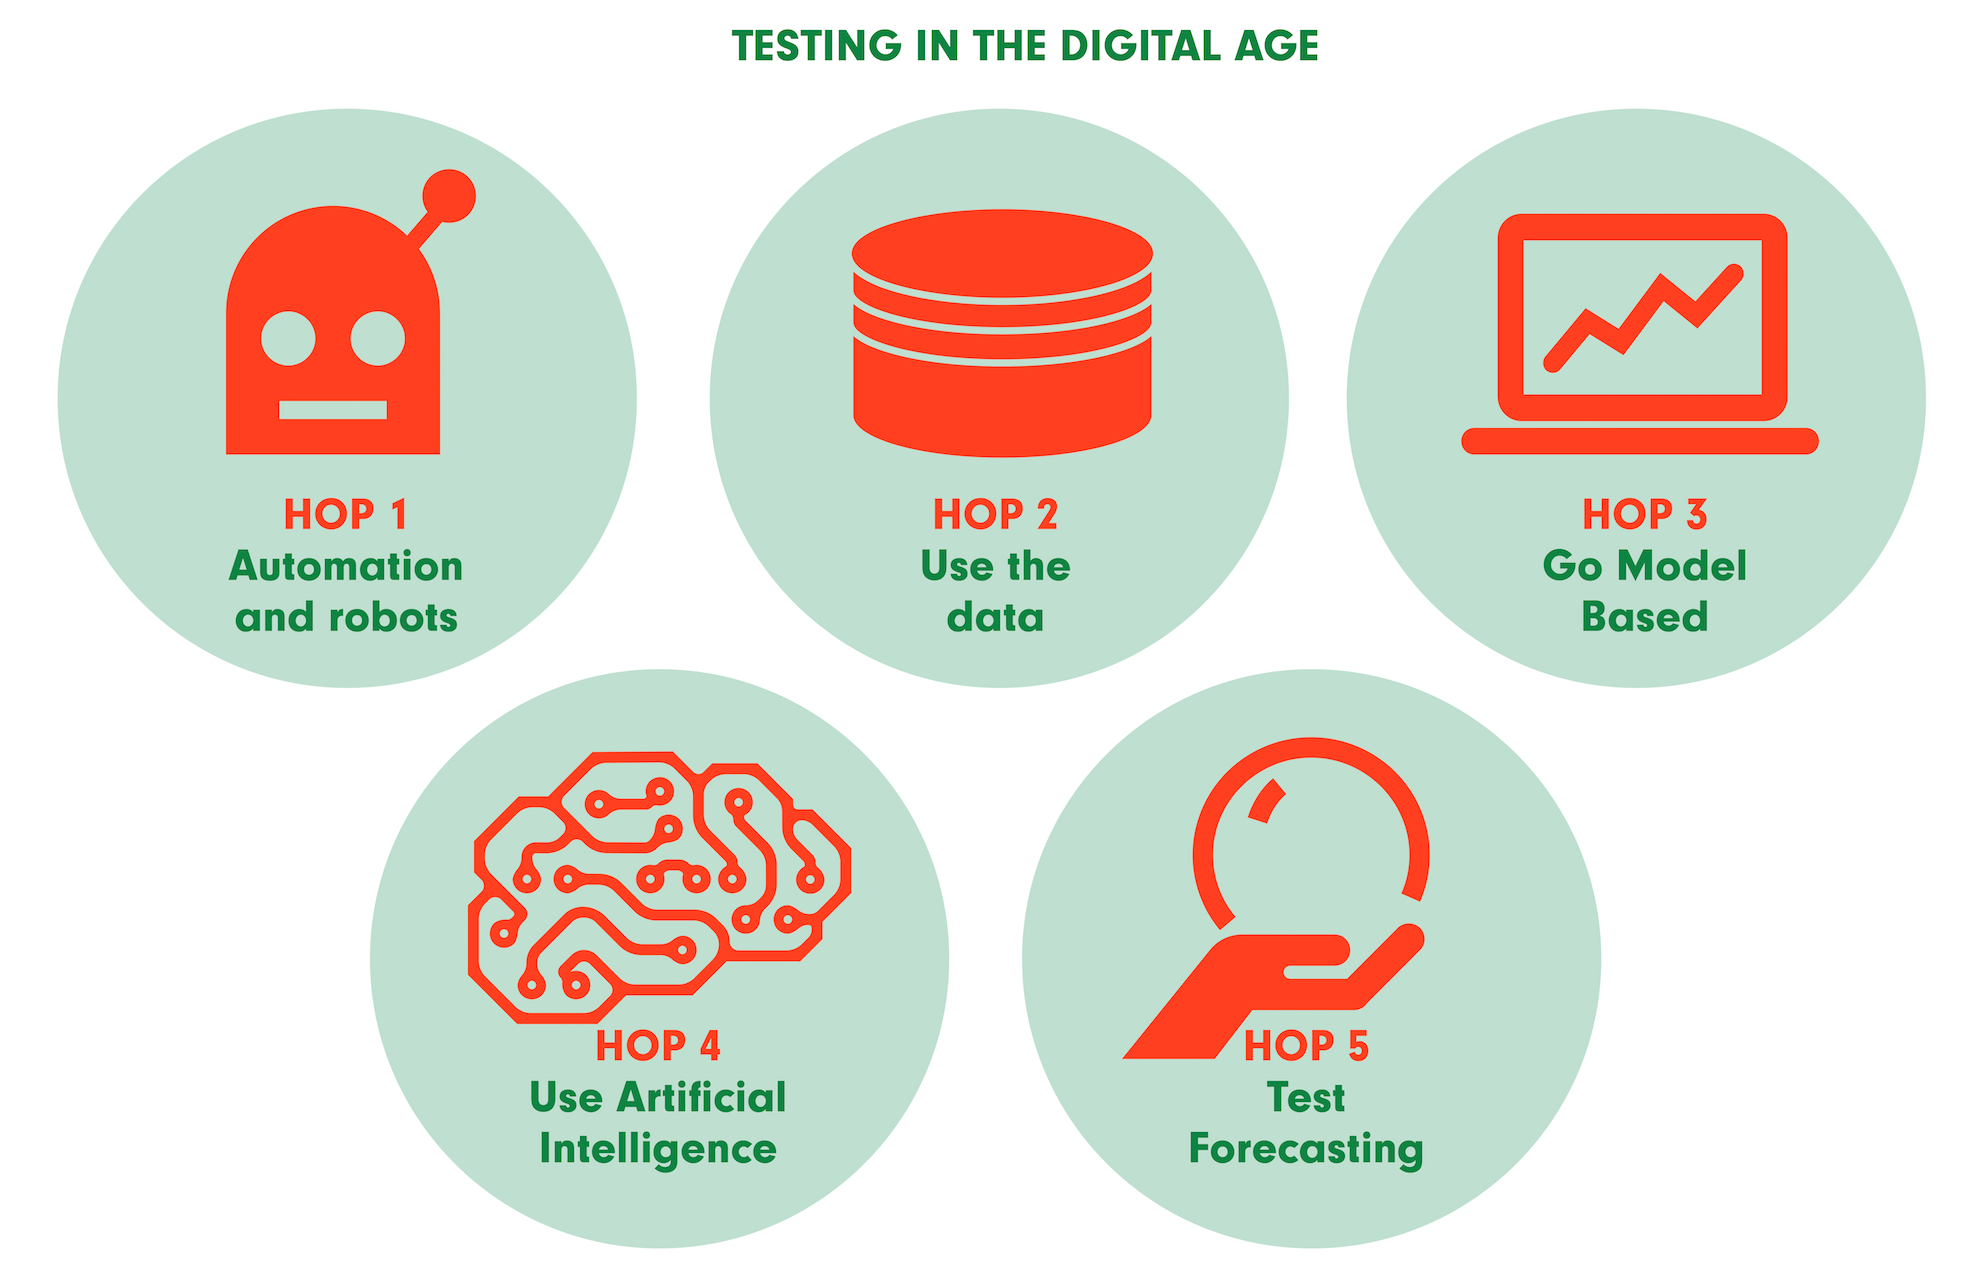 5 hops of testing in digital age